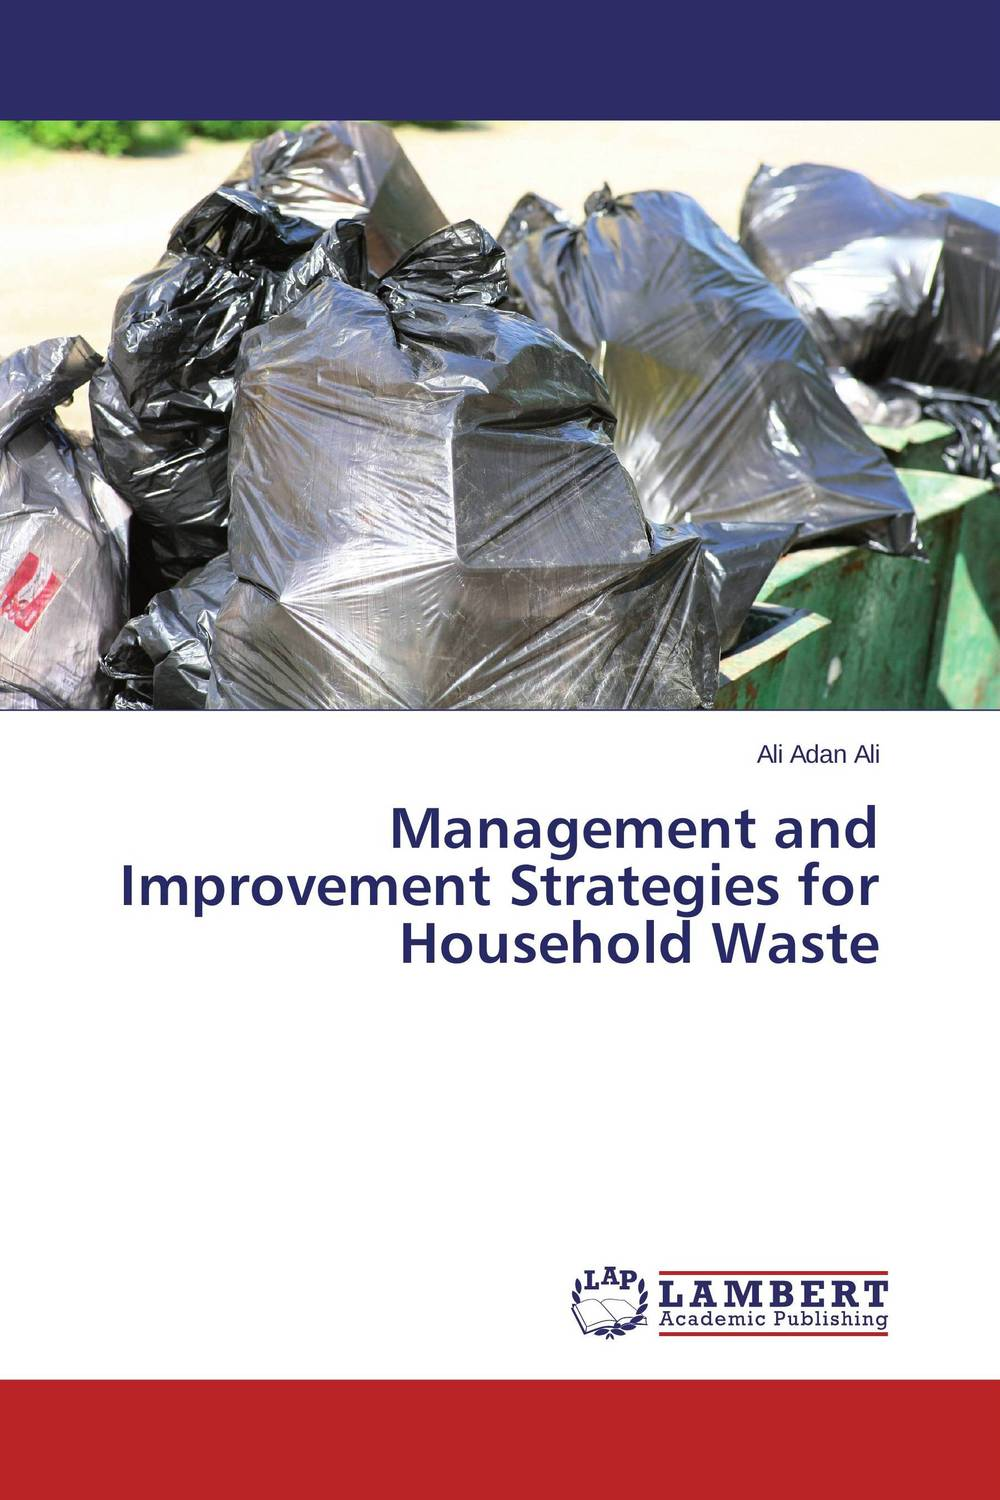 Management and Improvement Strategies for Household Waste prc environmental mgmt s hazardous waste reducation in the metal finishing industry